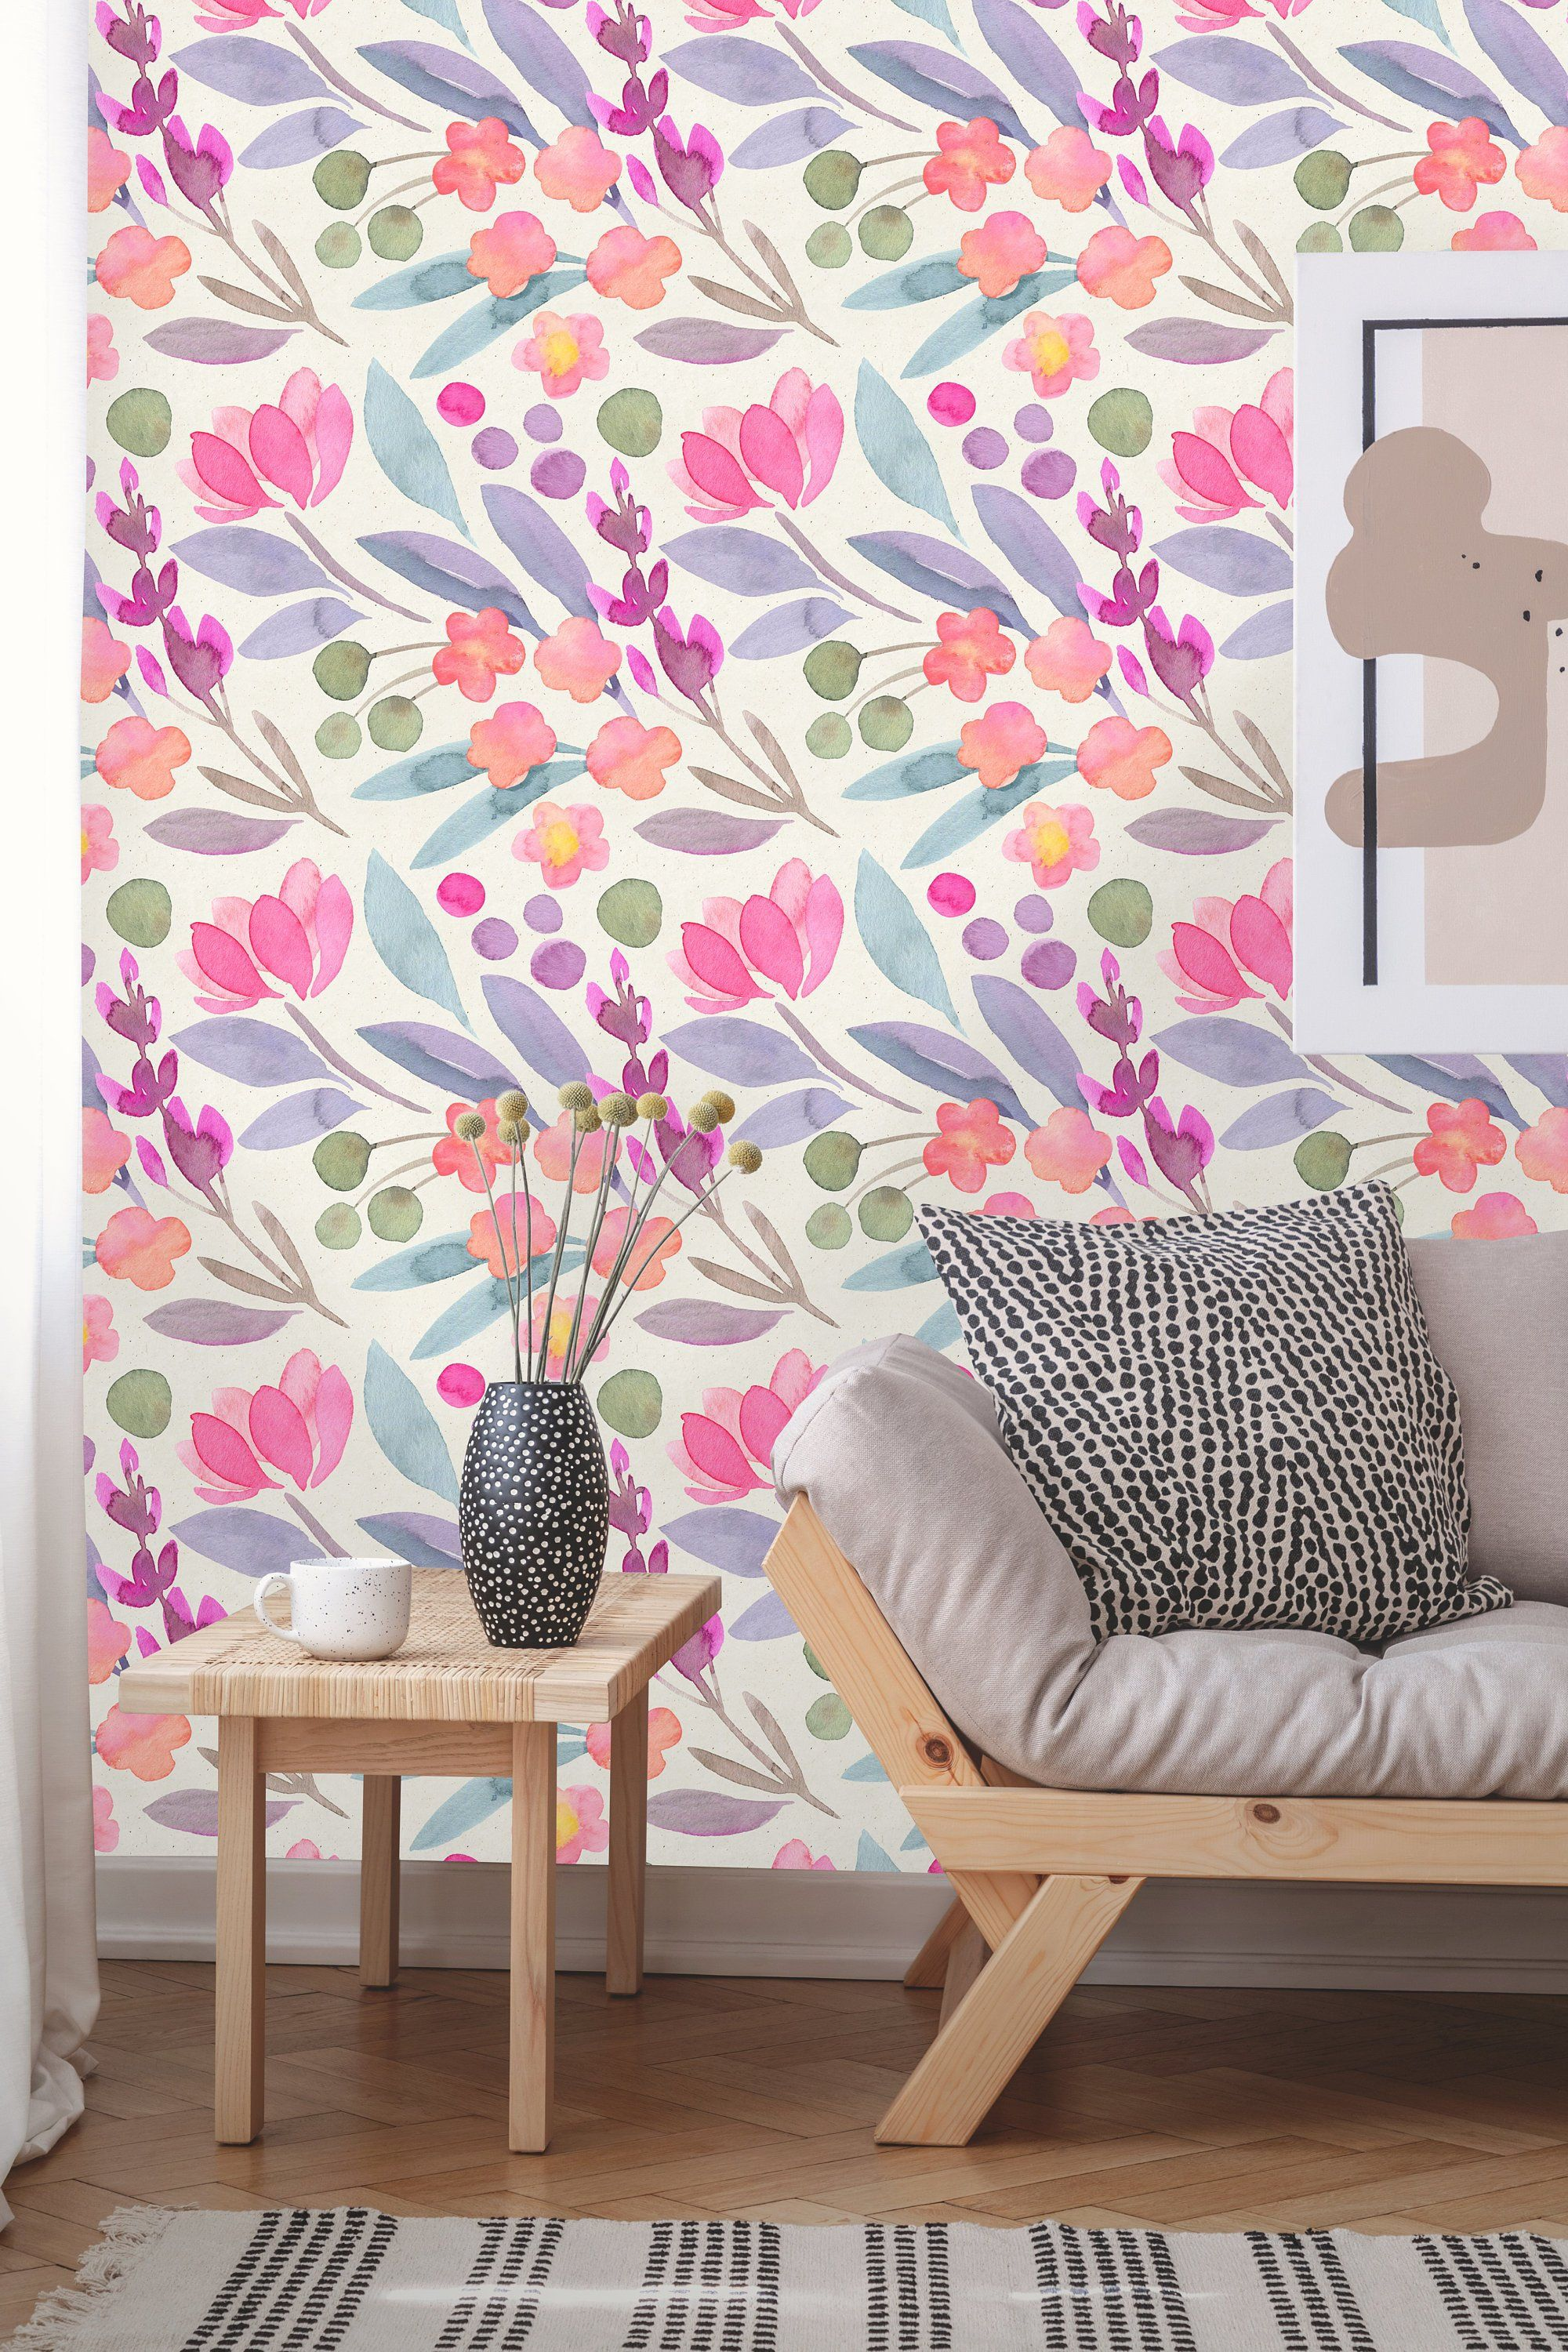 Removable Wallpaper Peel And Stick Watercolor Wallpaper Etsy Floral Wallpaper Removable Wallpaper Watercolor Wallpaper